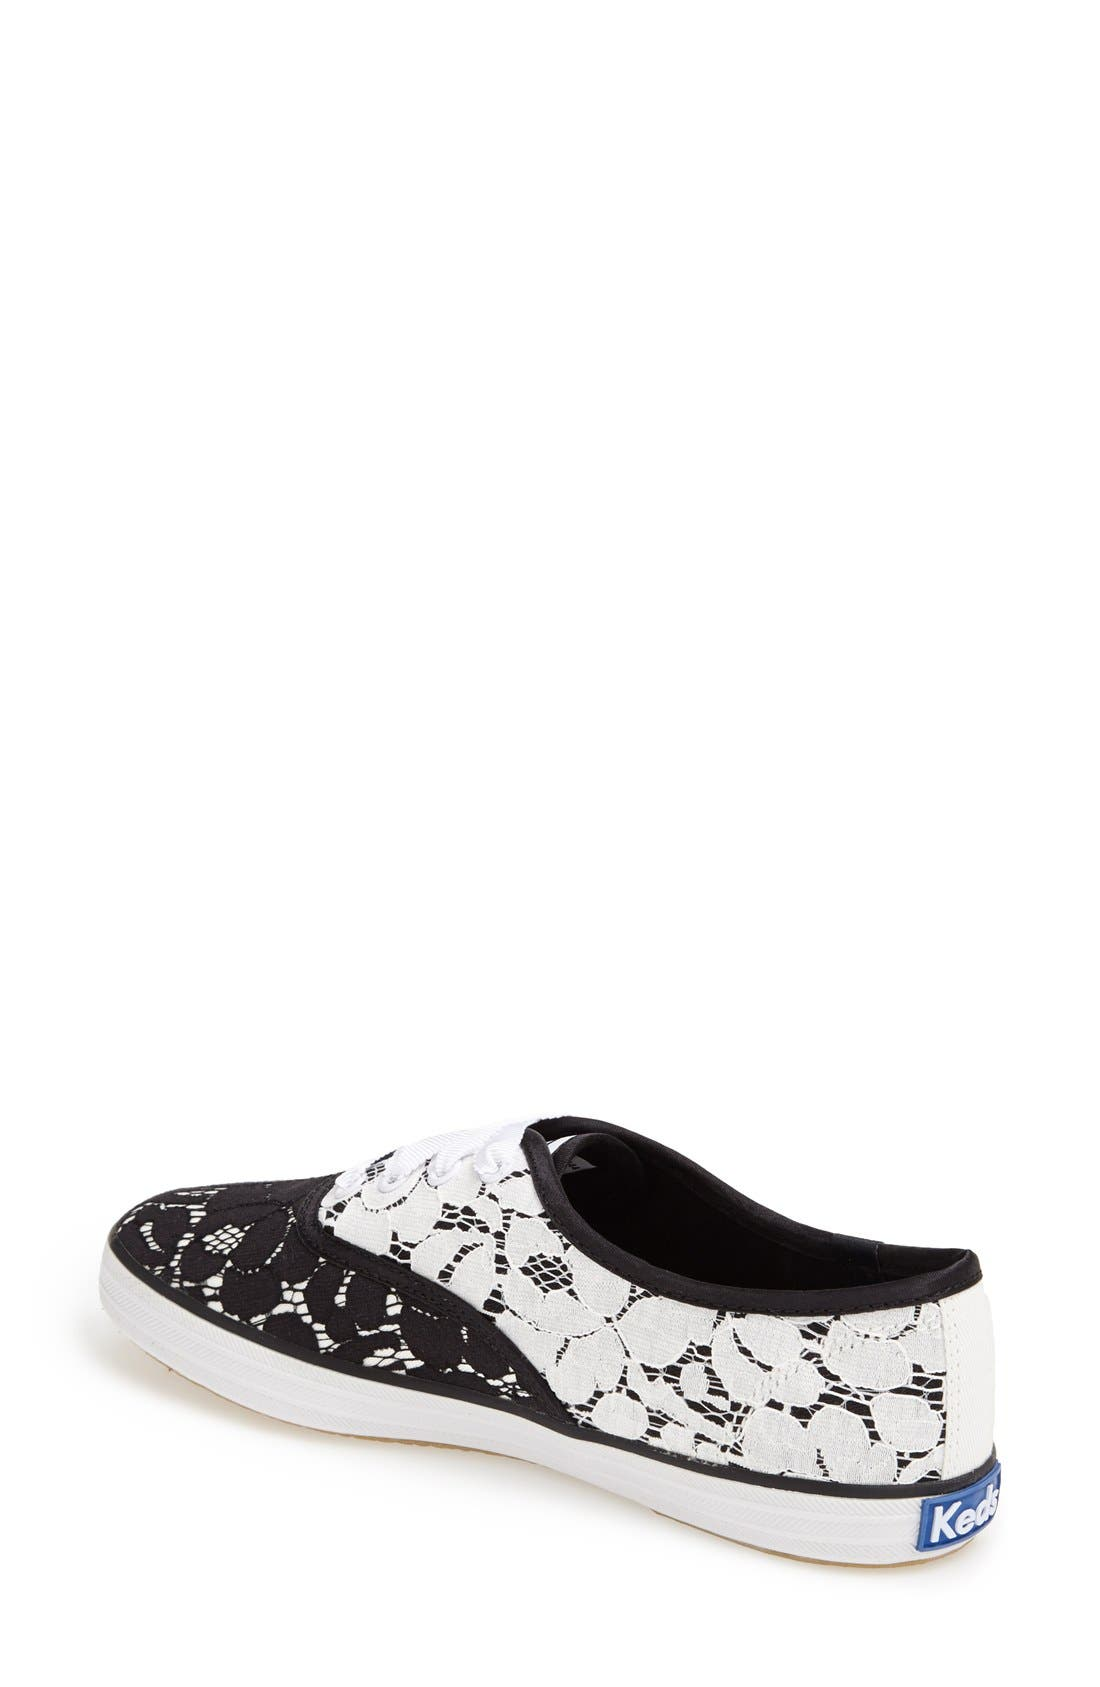 Alternate Image 2  - Keds® 'Champion - Lace' Sneaker (Women)